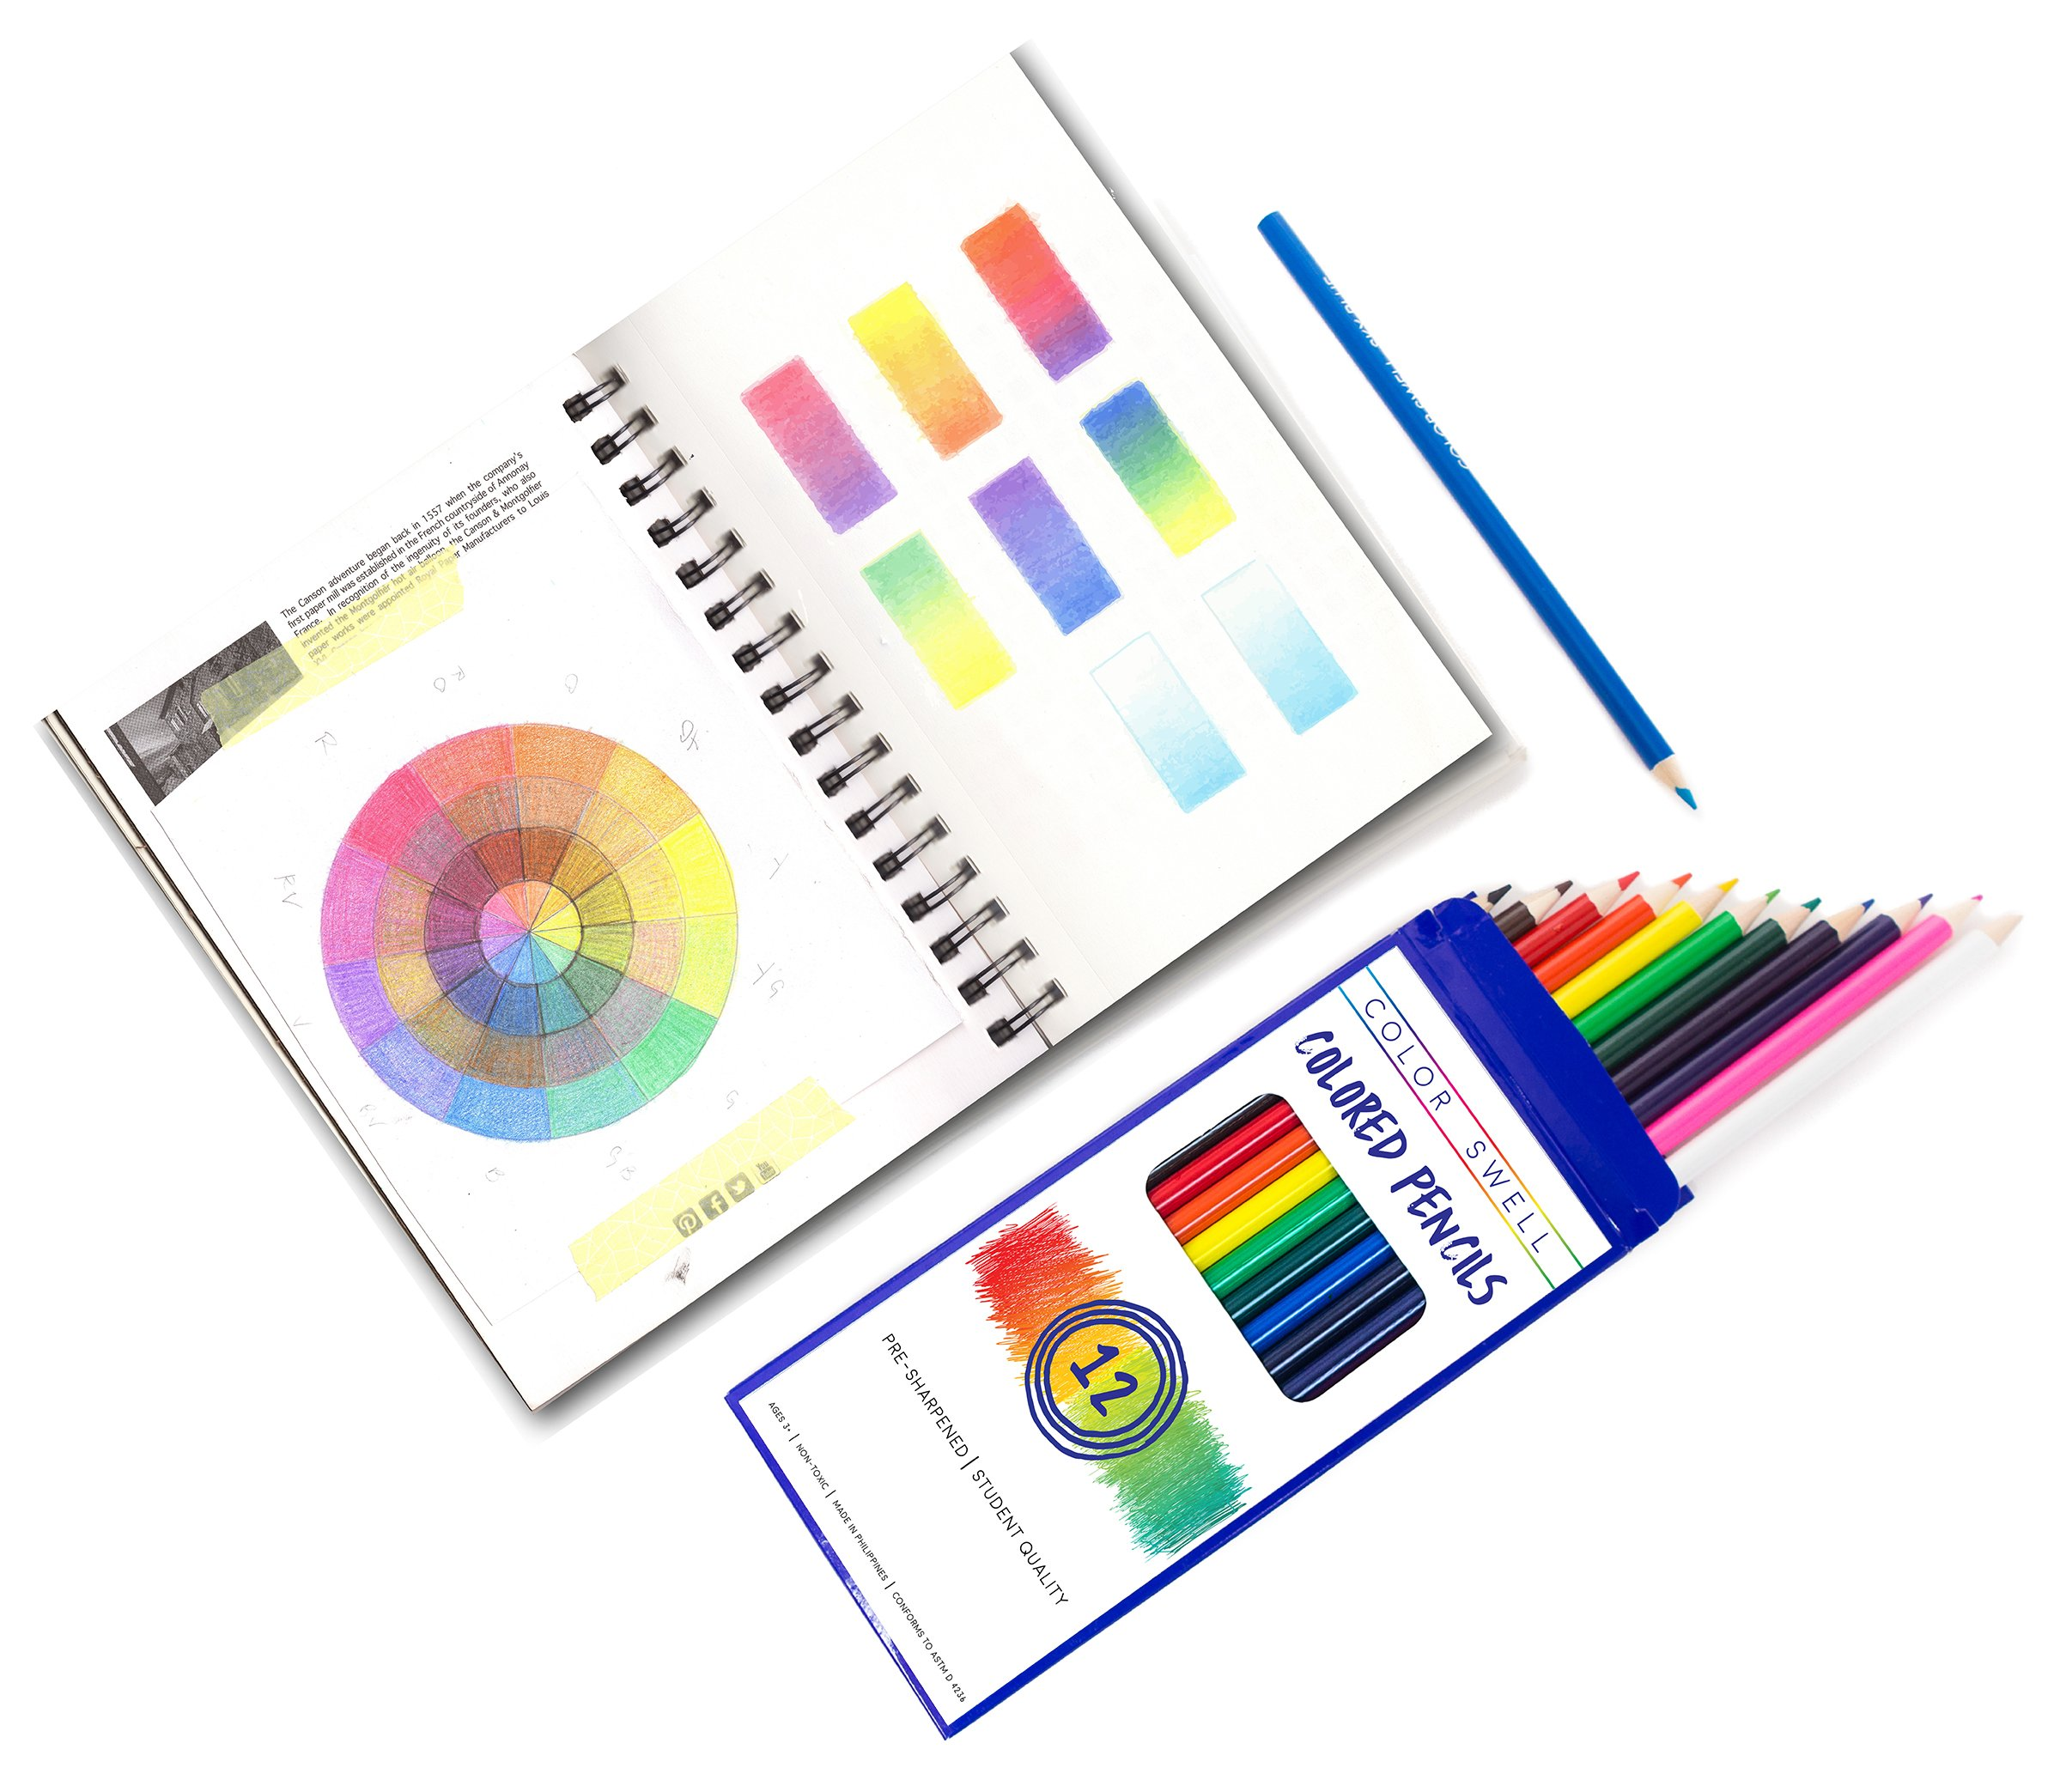 Color Swell Colored Pencils Bulk Pack 30 Sets 12 Count Assorted Vibrant Colors 360 Total Perfect for Kids, Teachers and Classrooms by Color Swell (Image #8)